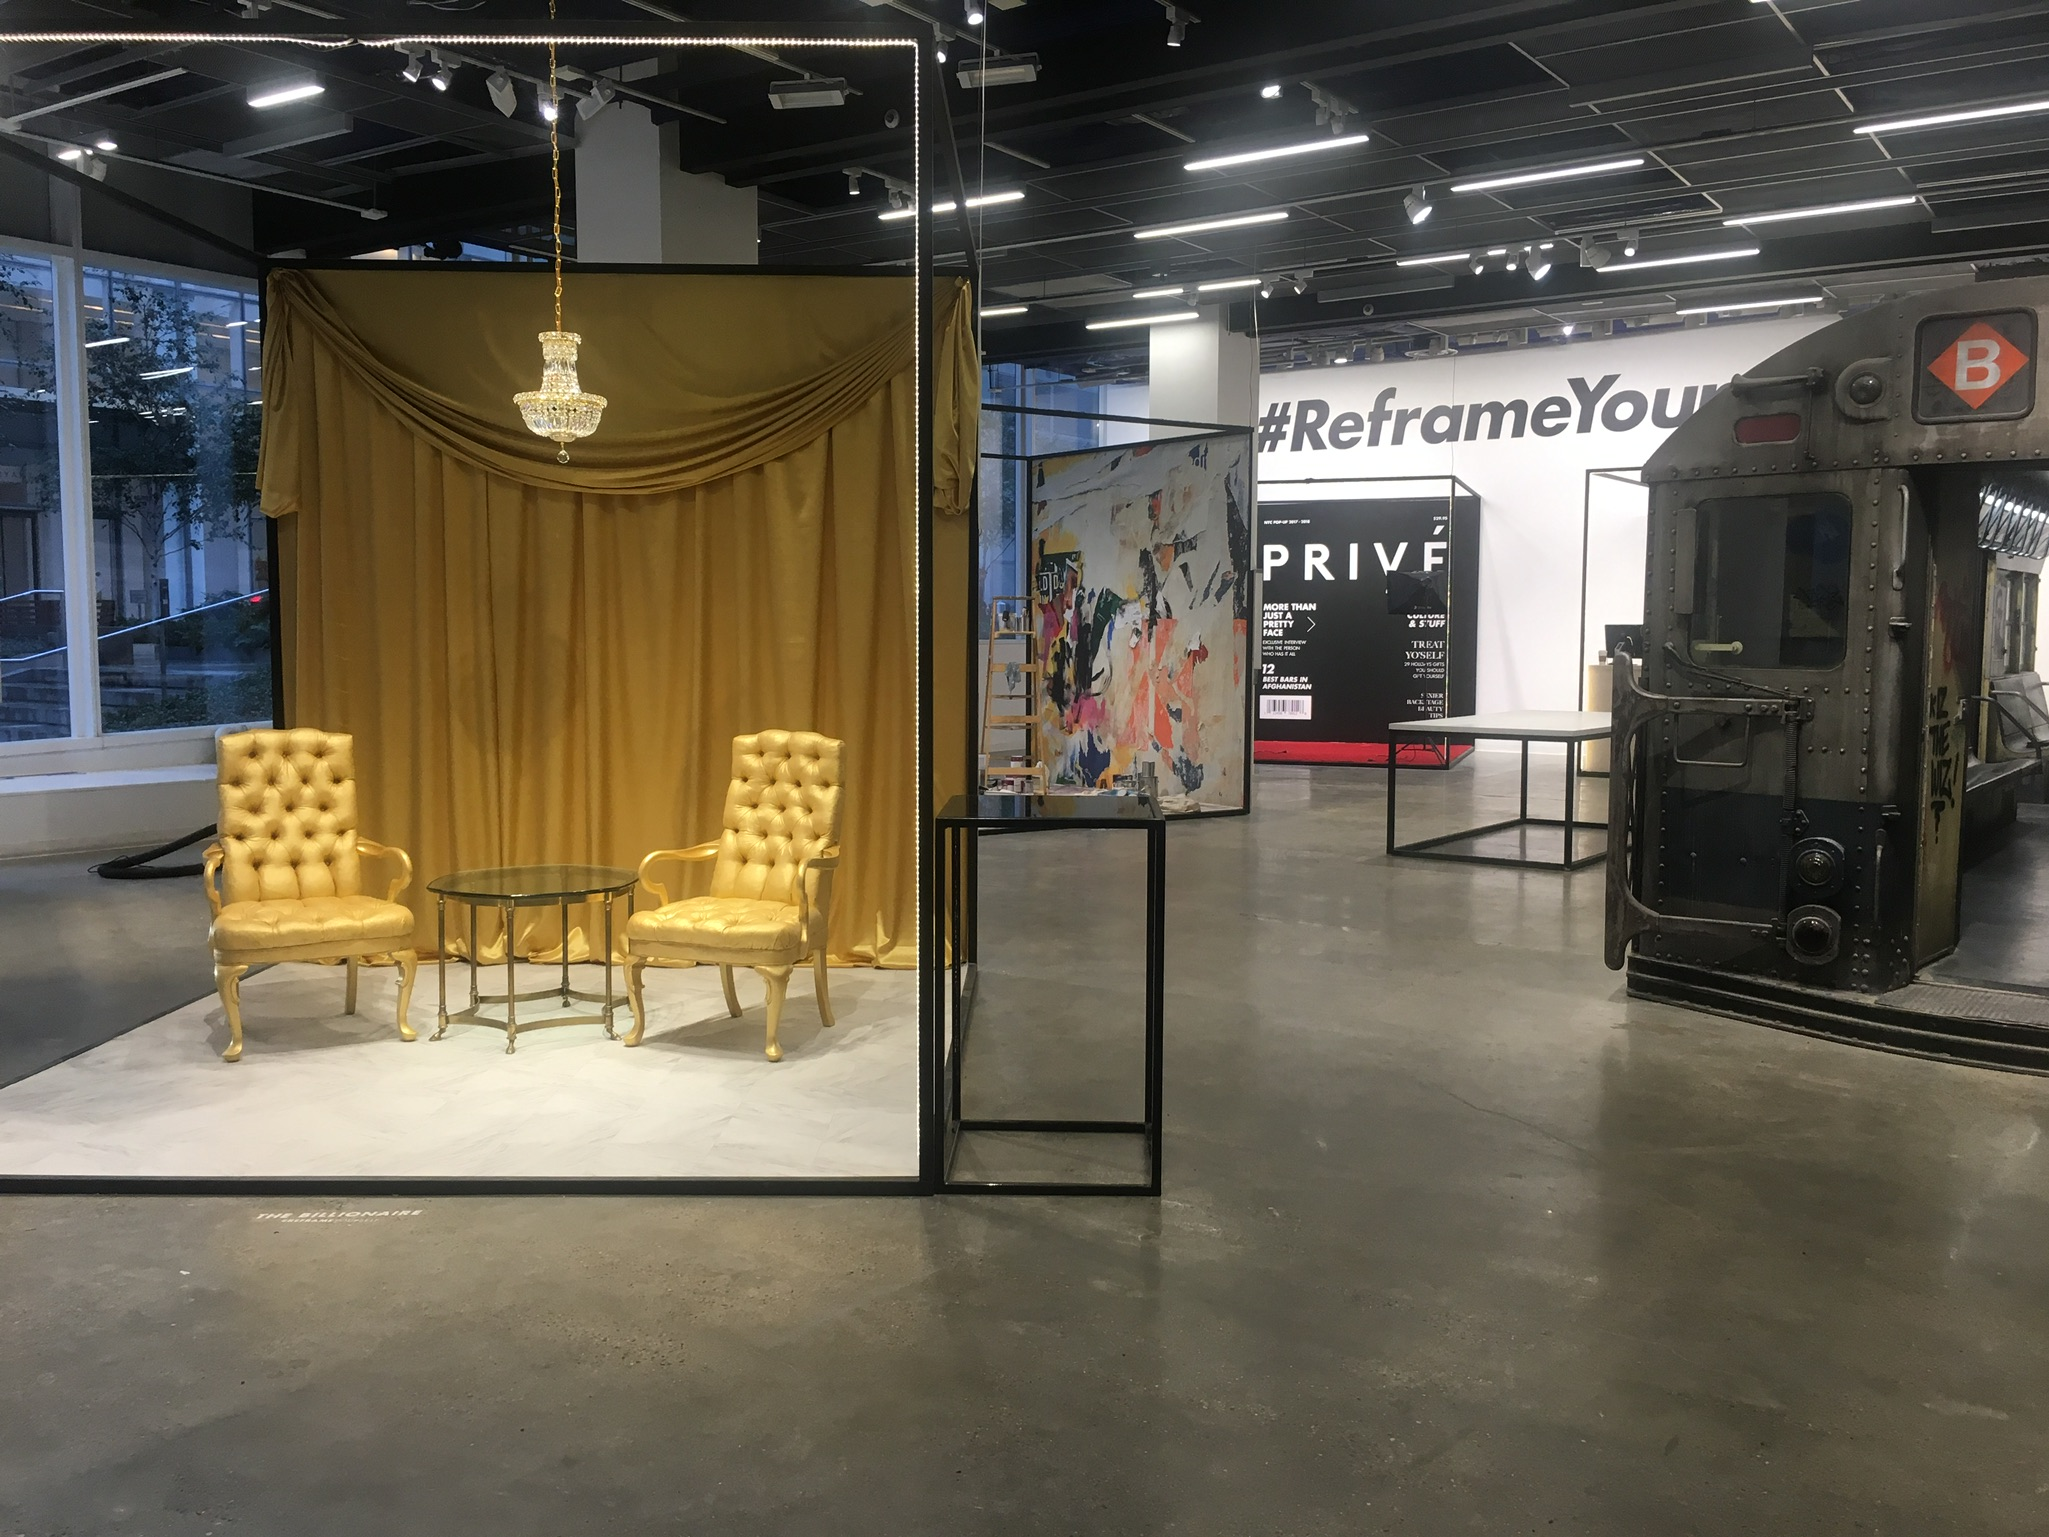 Preview Events - Prive Revaux - reframe yourself.jpg